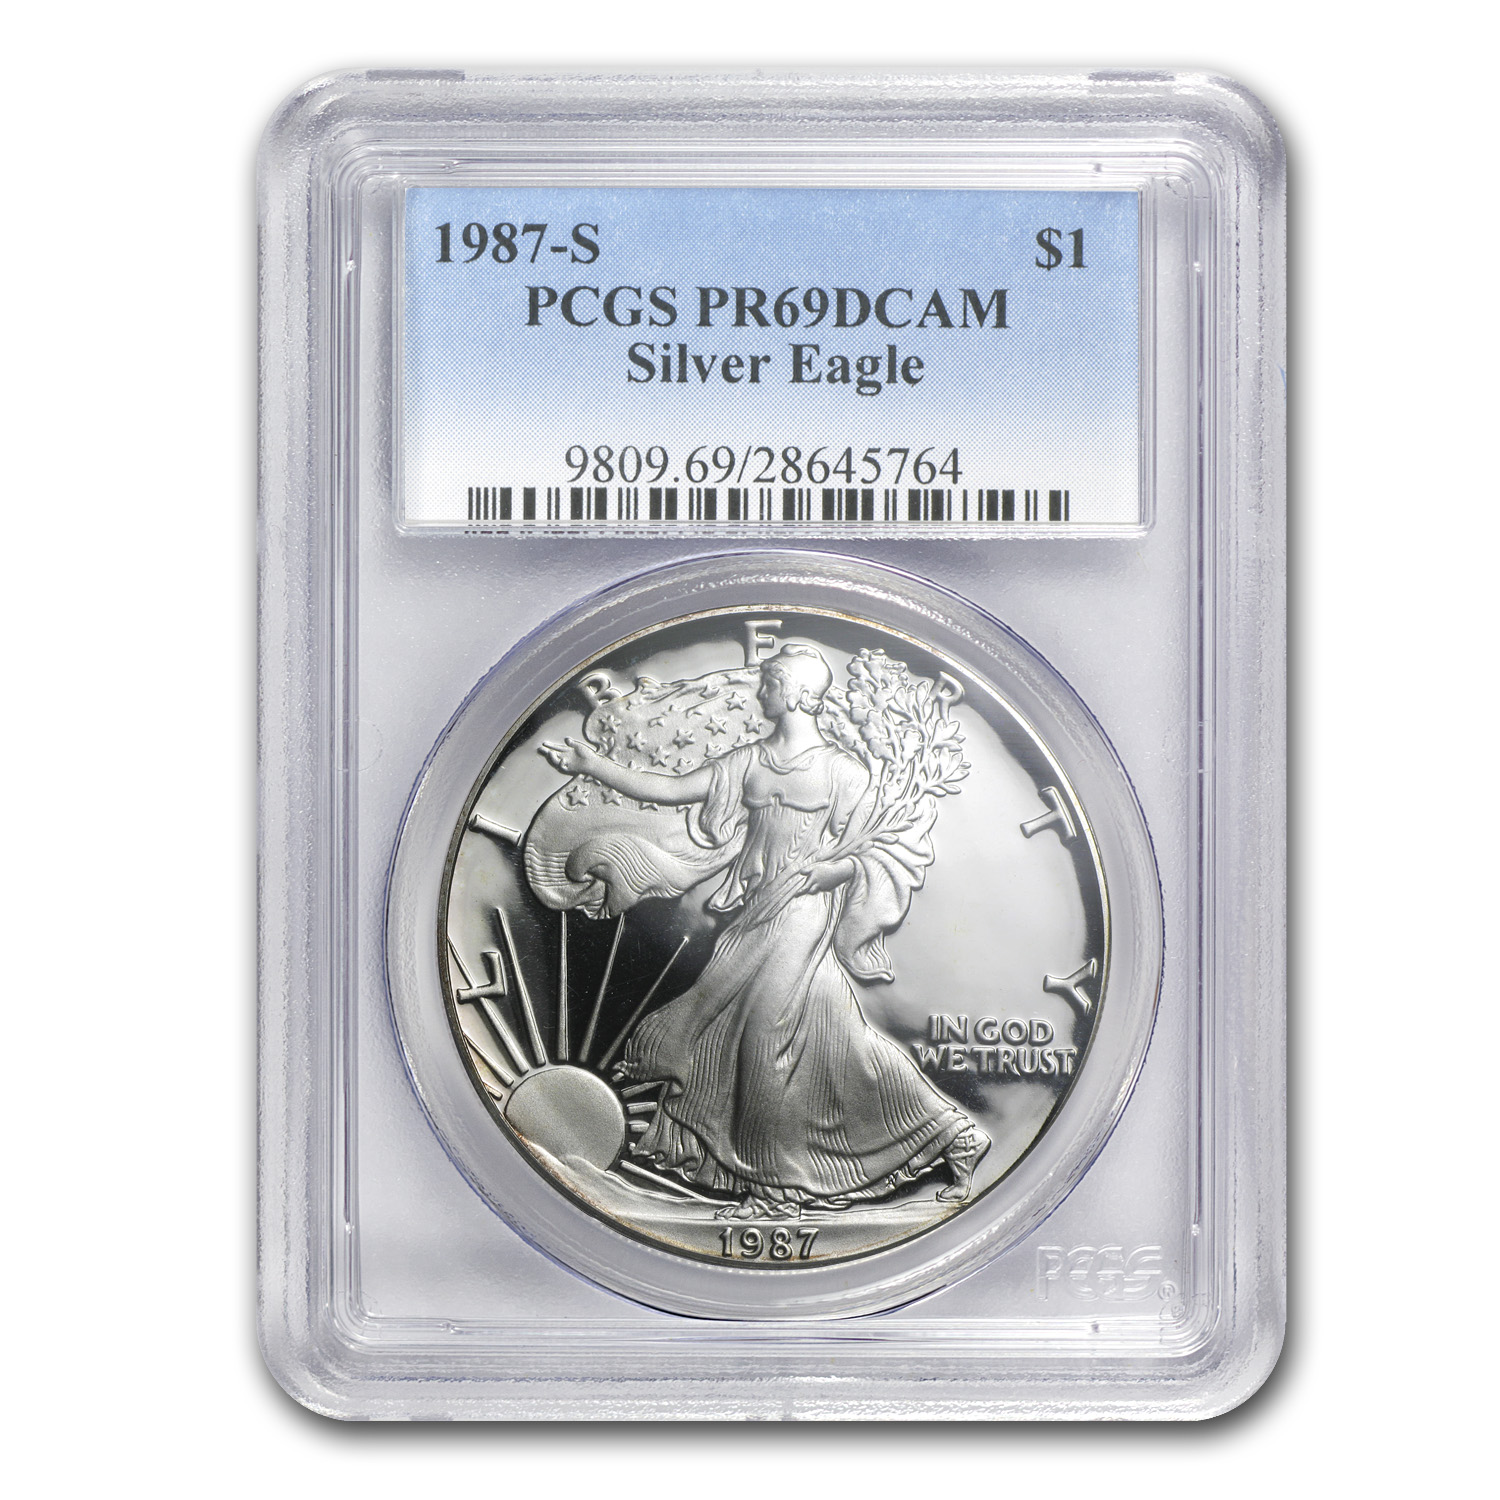 1987-S Proof Silver American Eagle PR-69 PCGS